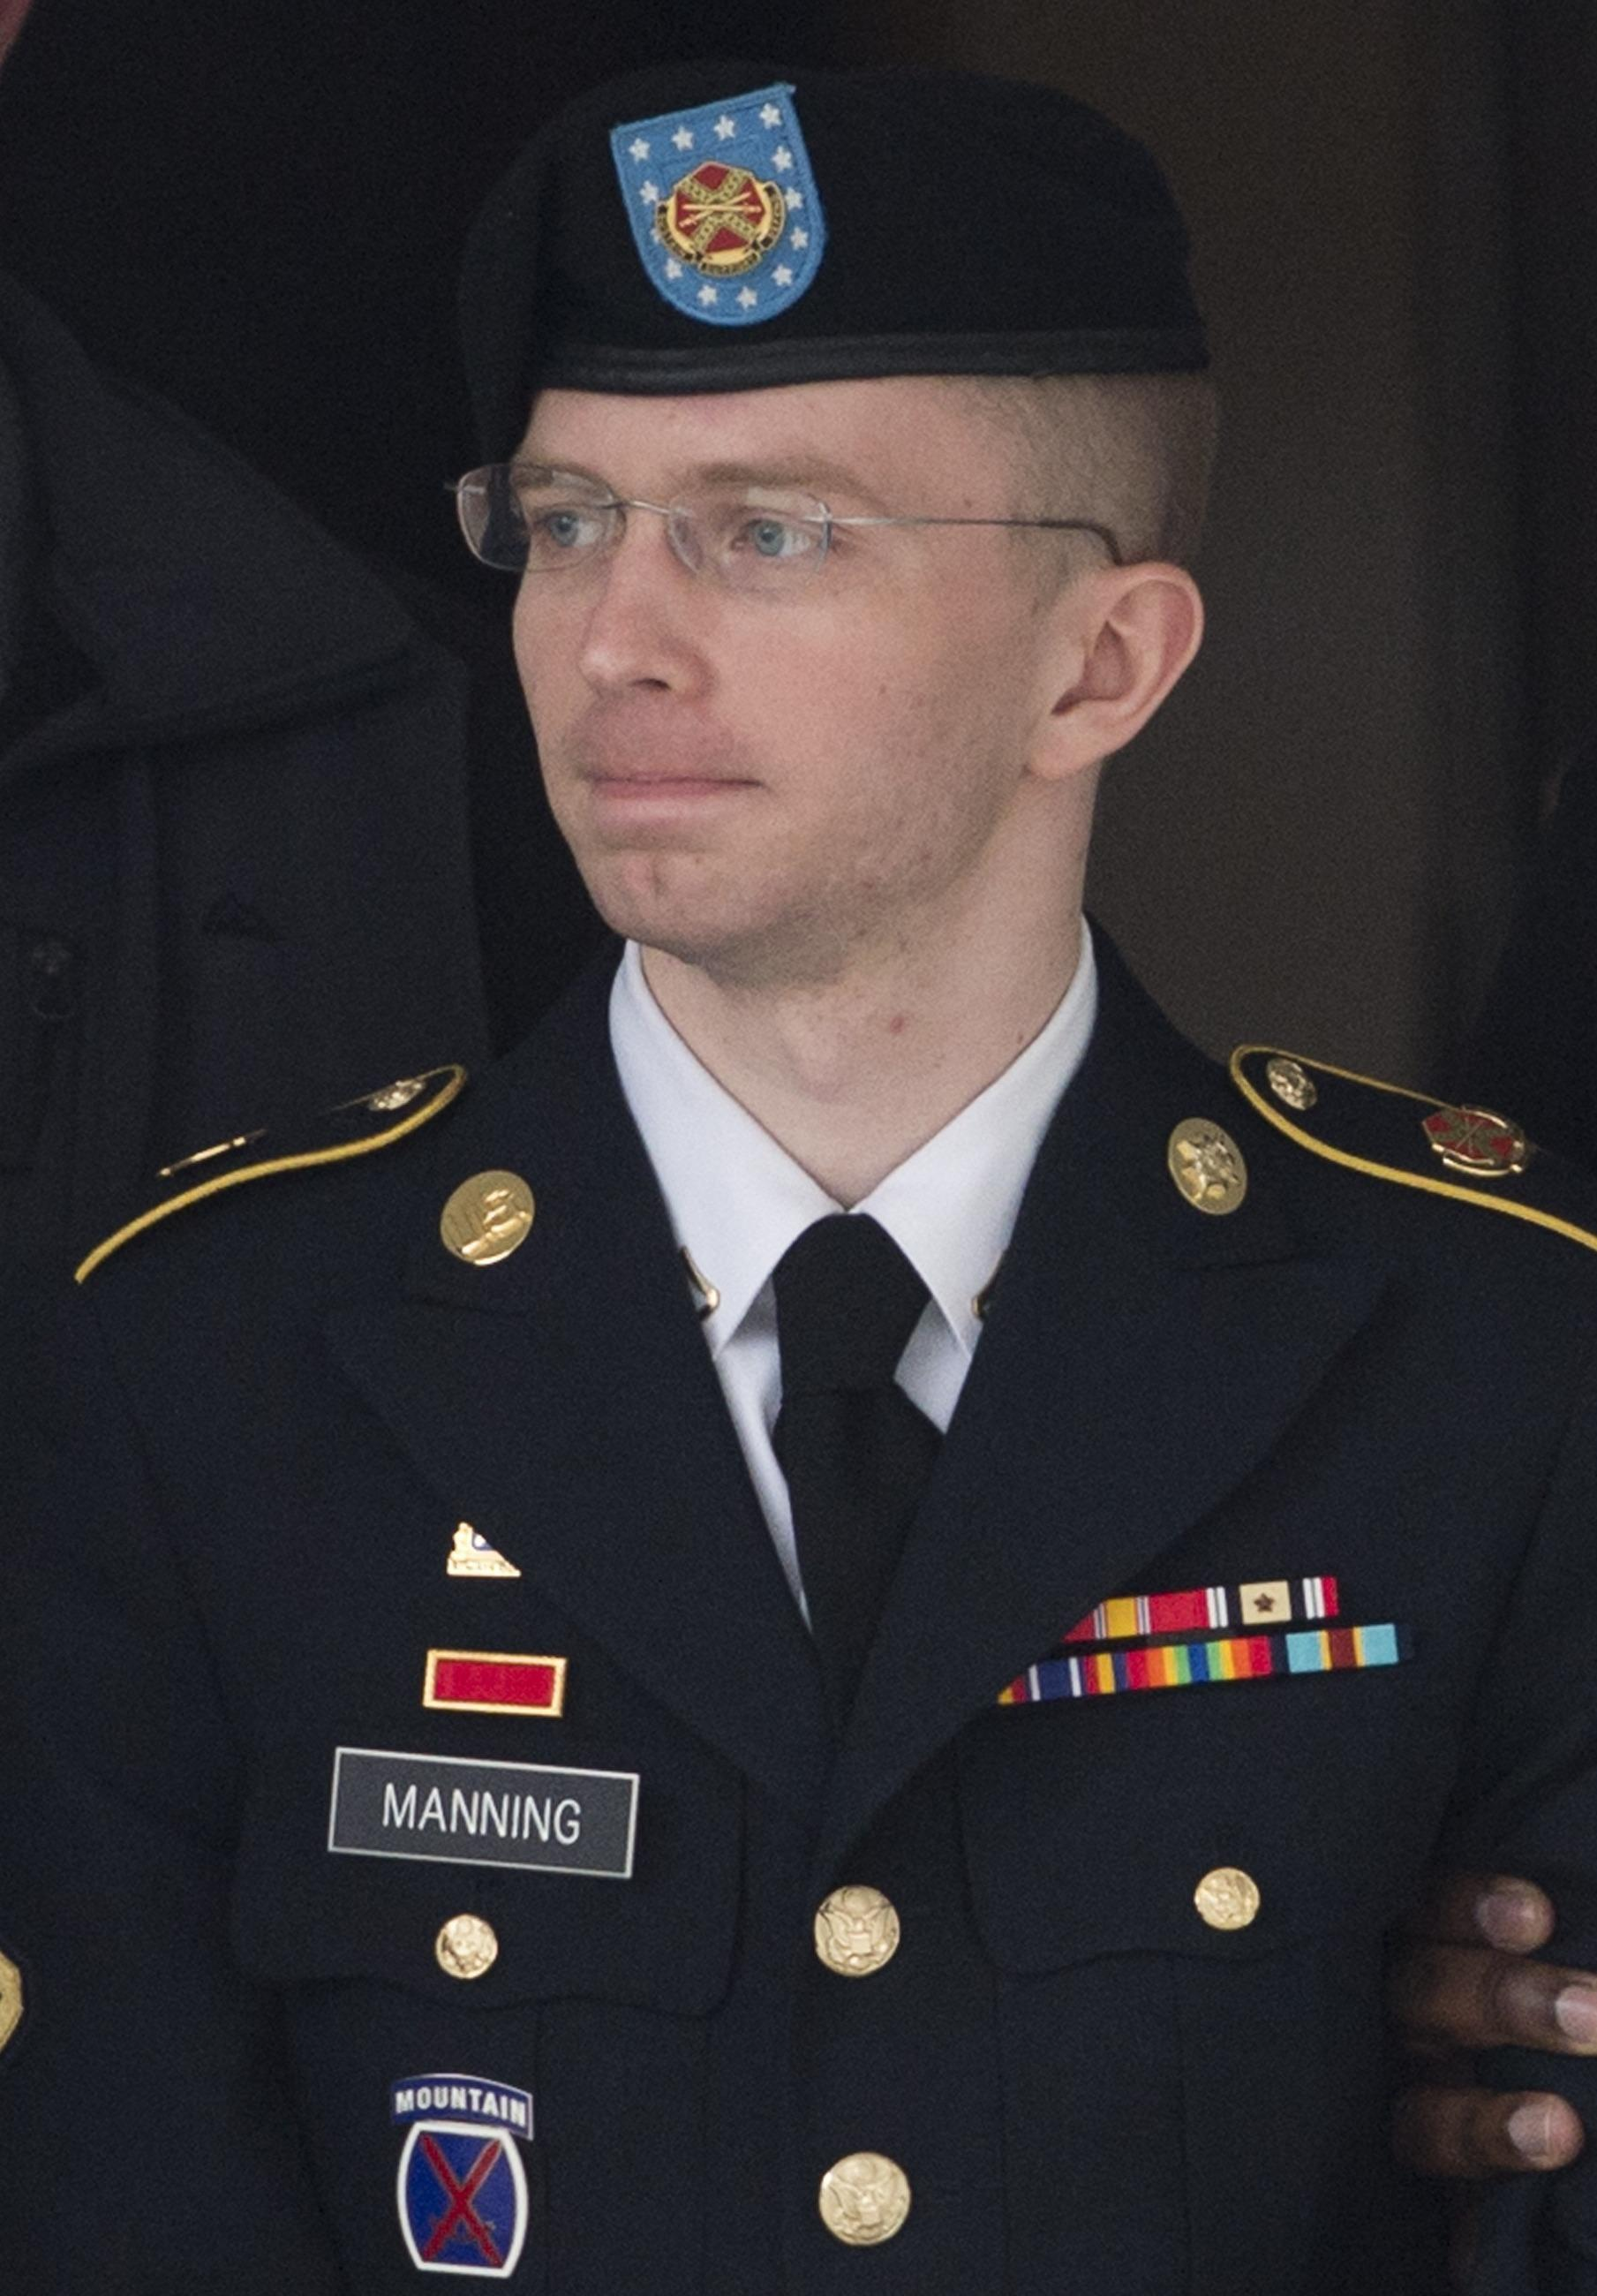 bradley manning responsible for the largest Bradley manning, the us soldier responsible for the largest military leak in american history, can expect to face a substantial portion of his adult life in prison, legal experts say.